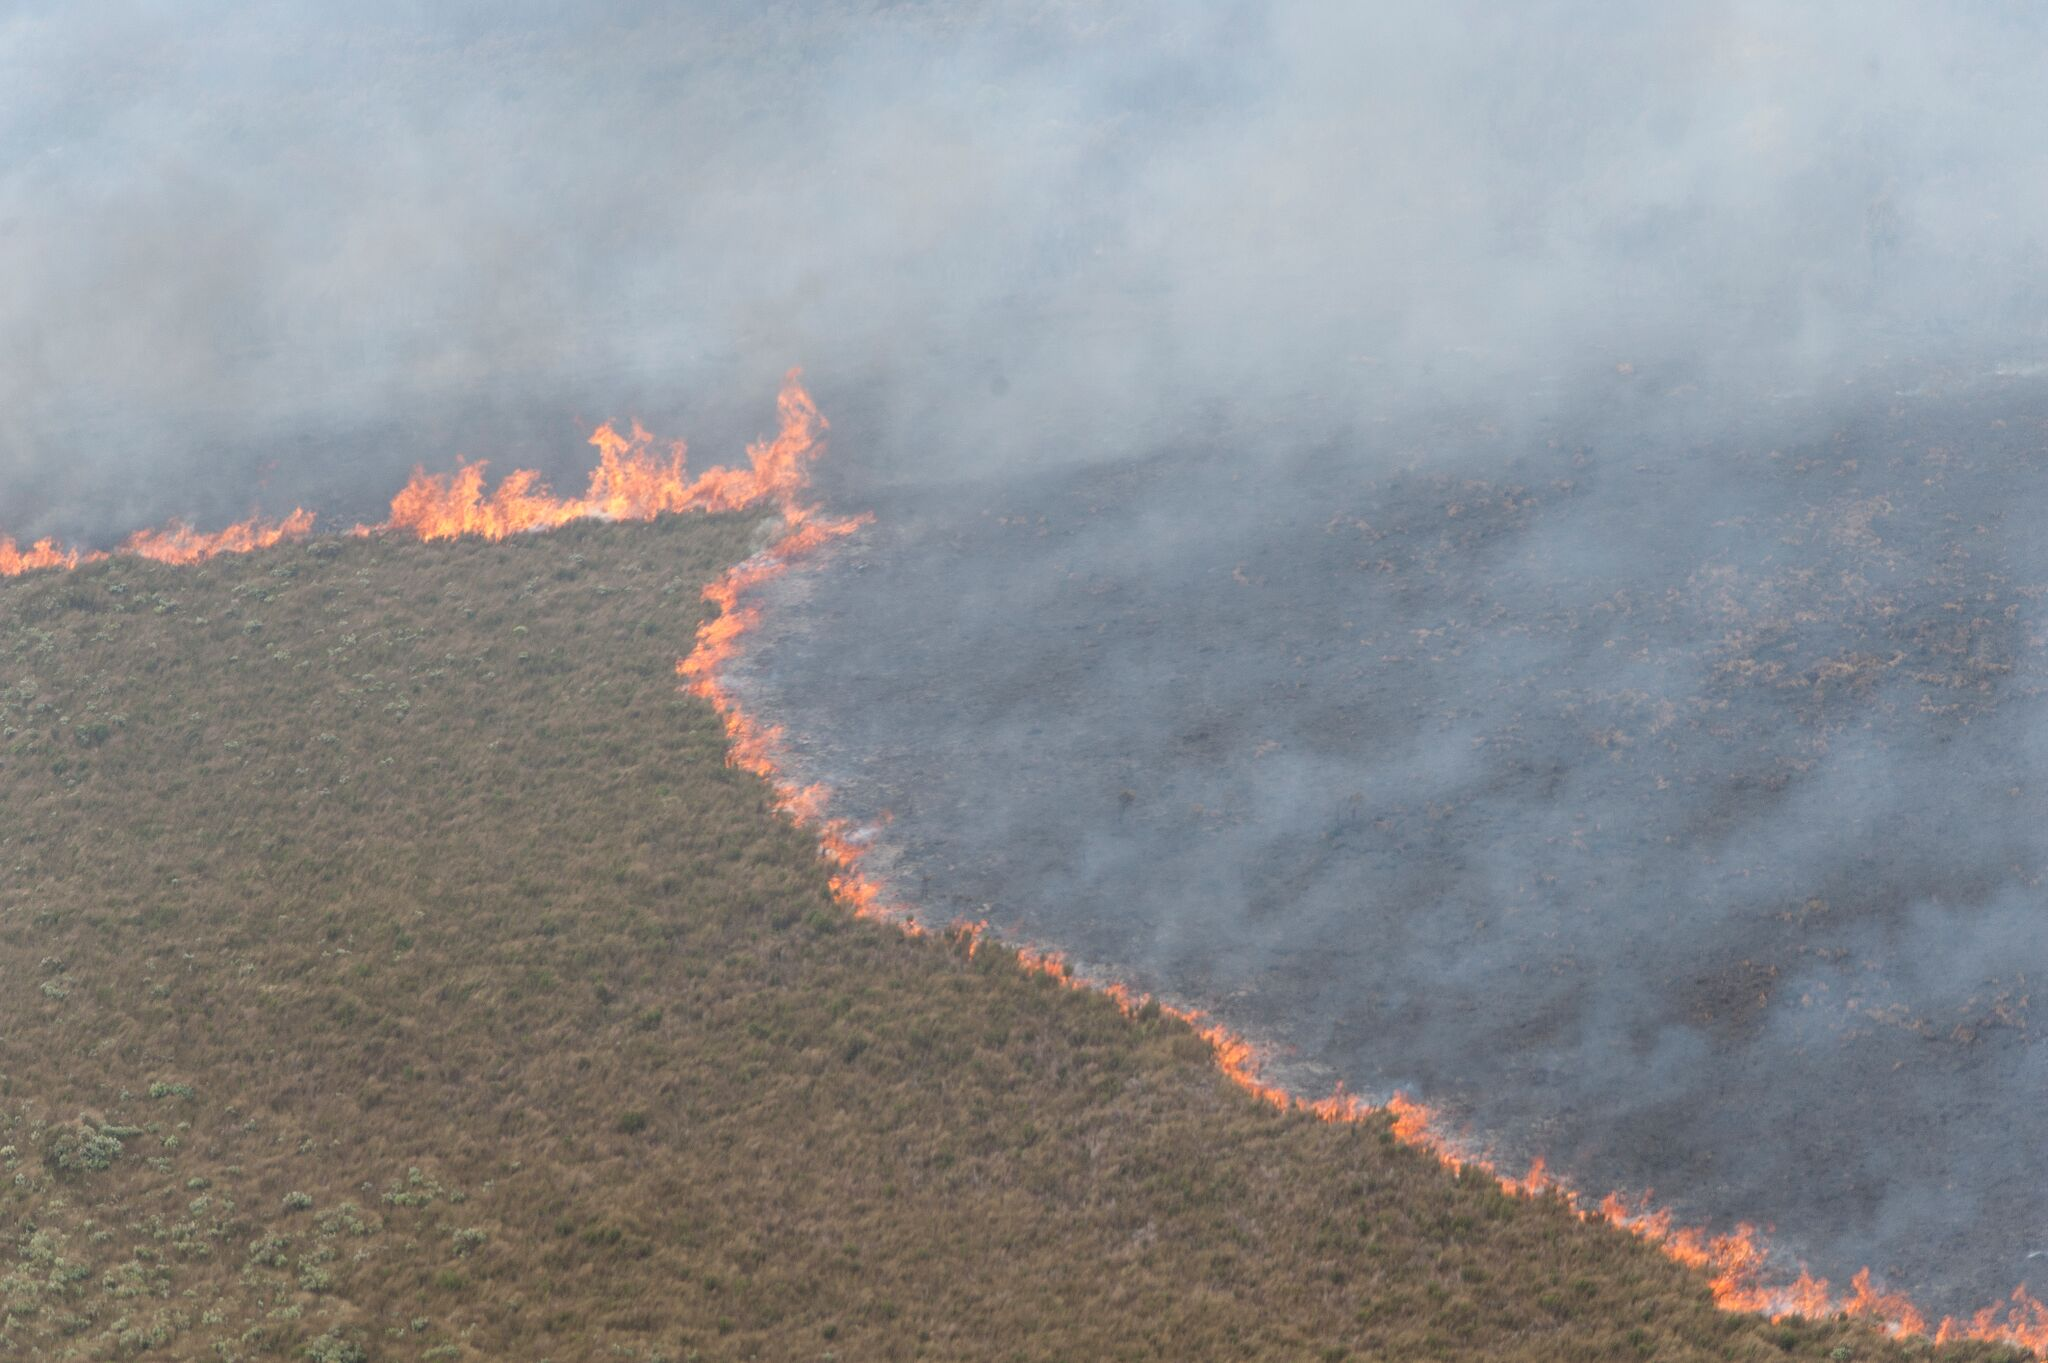 Firefighters deployed to help fight large wild fire in the Chathams icon